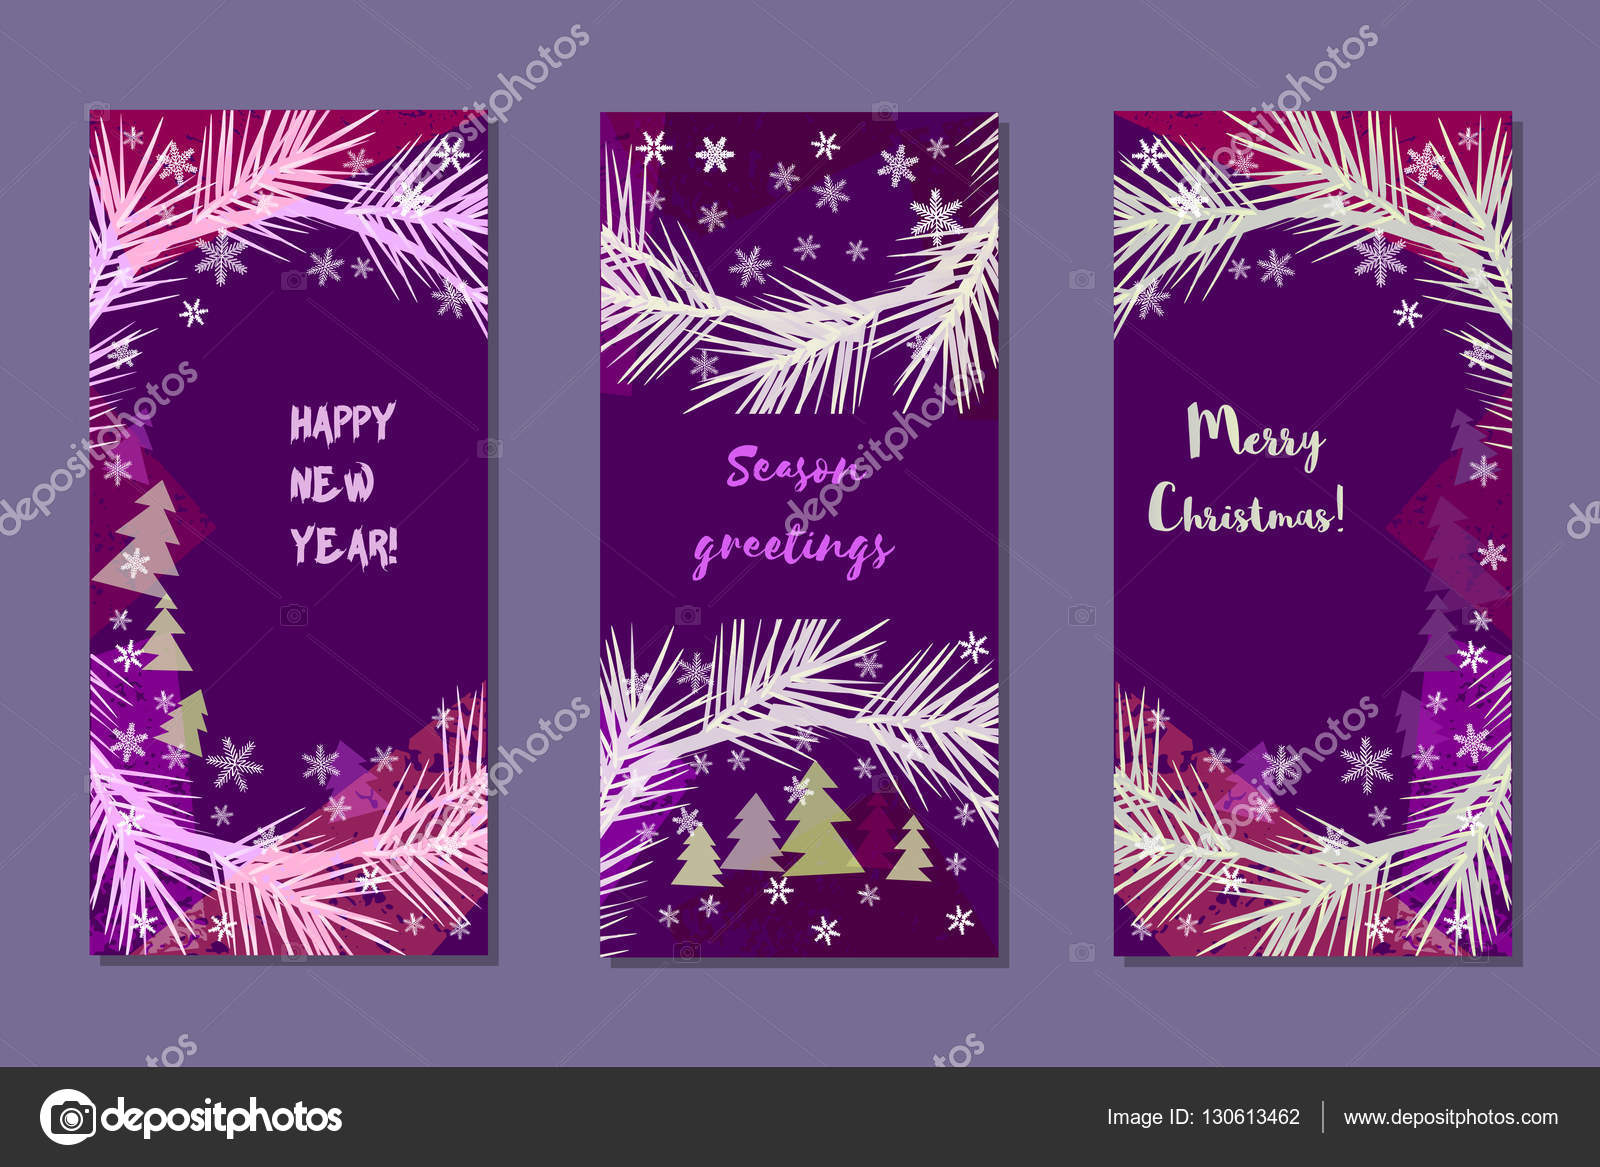 set of vertical vector banners season greetings merry christmas happy new yearvintage style design element for creative leaflet brochure background